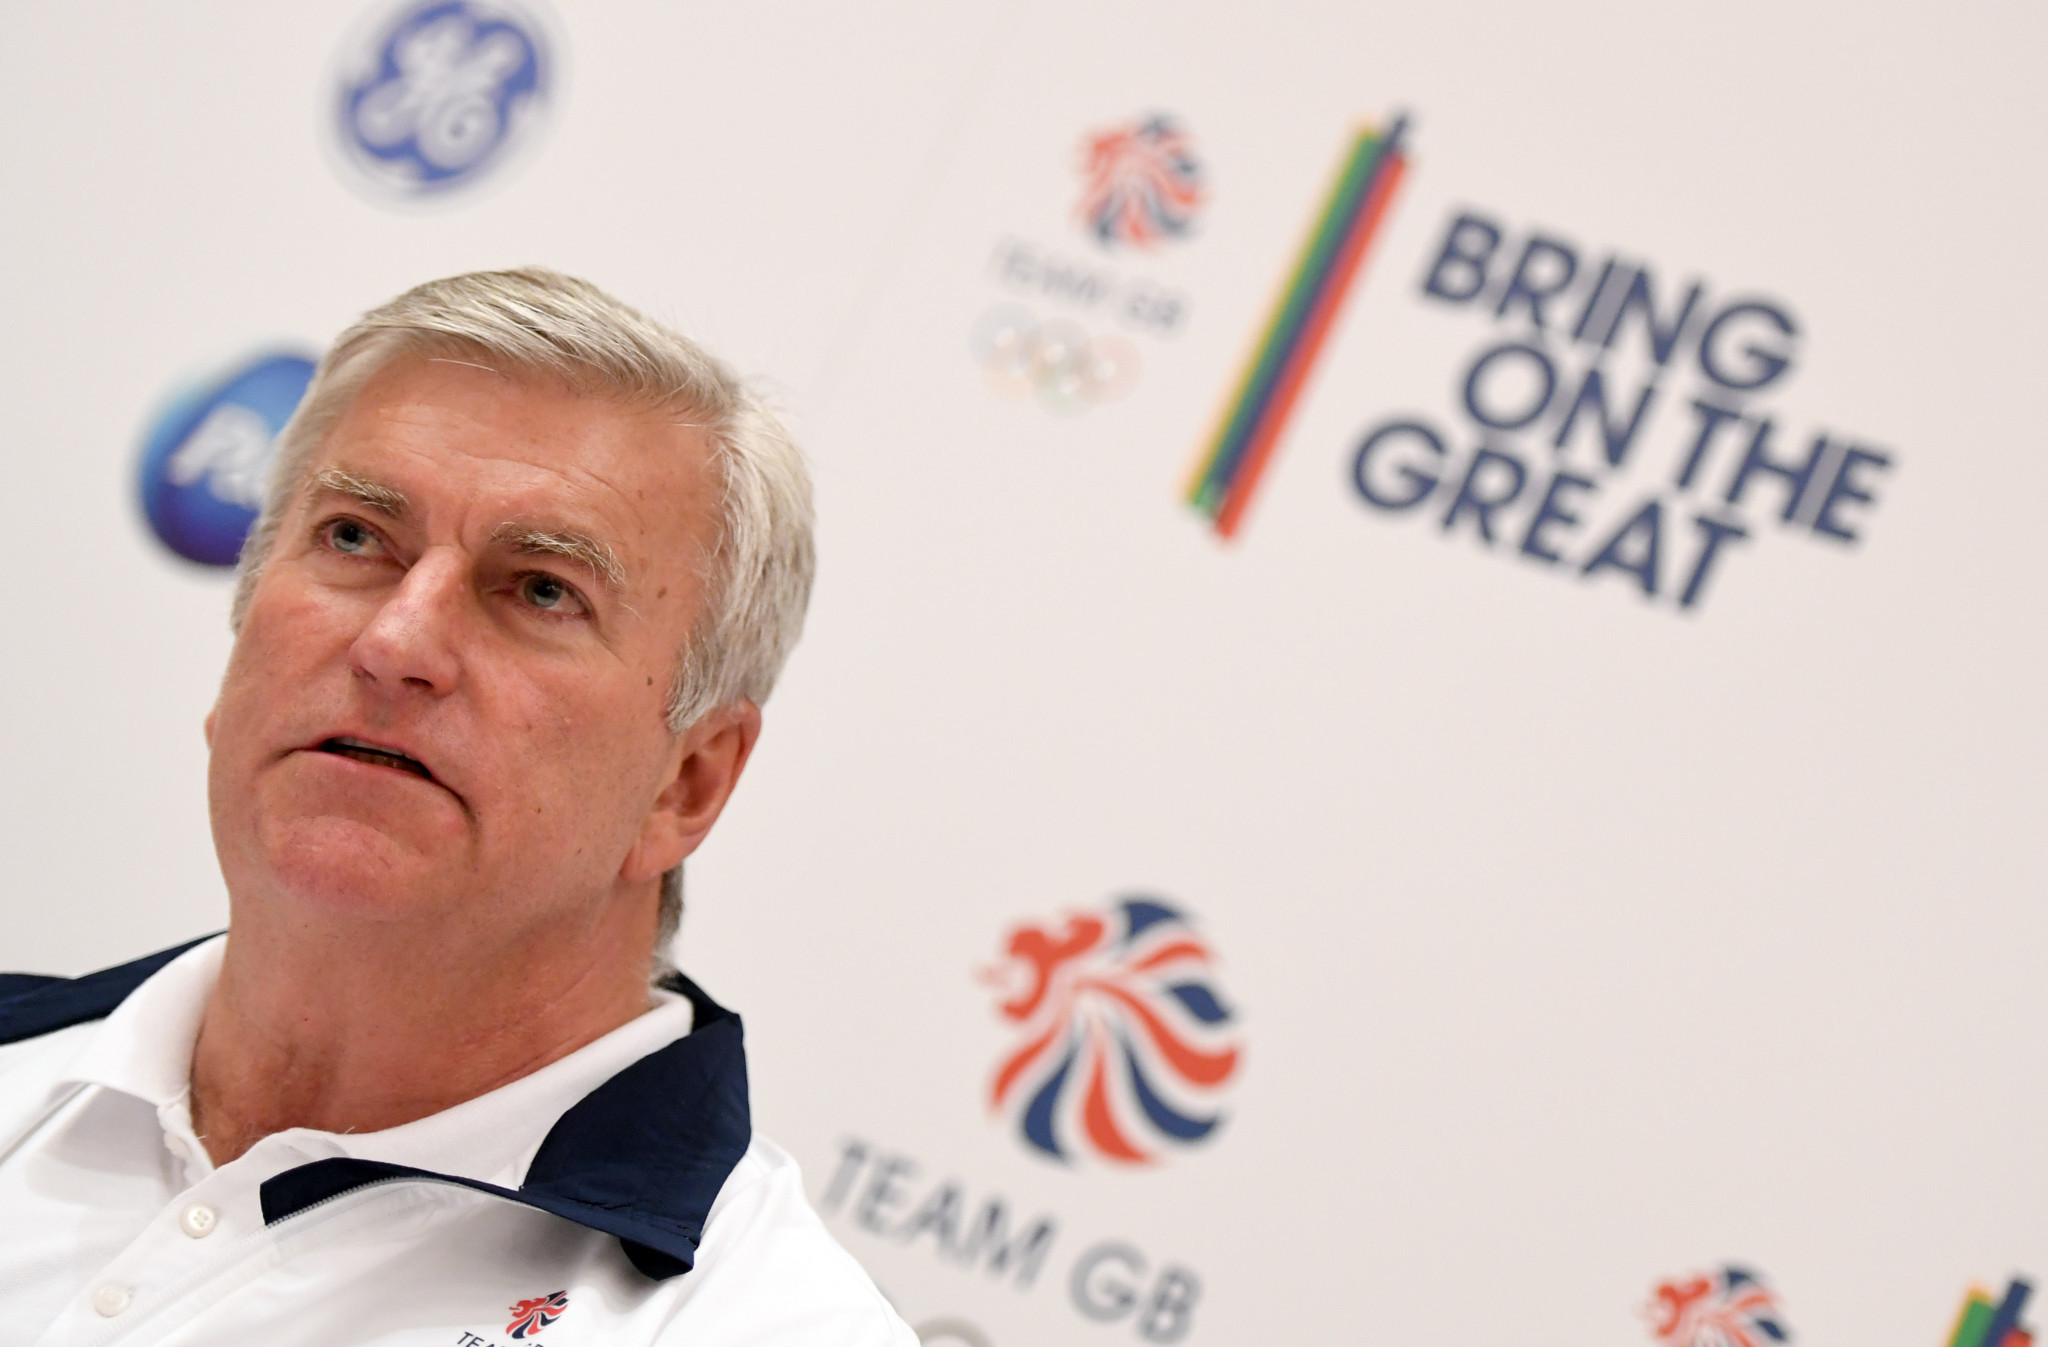 BOA chief executive Bill Sweeney spoke after similar comments from counterparts at the USOC and COC ©Getty Images